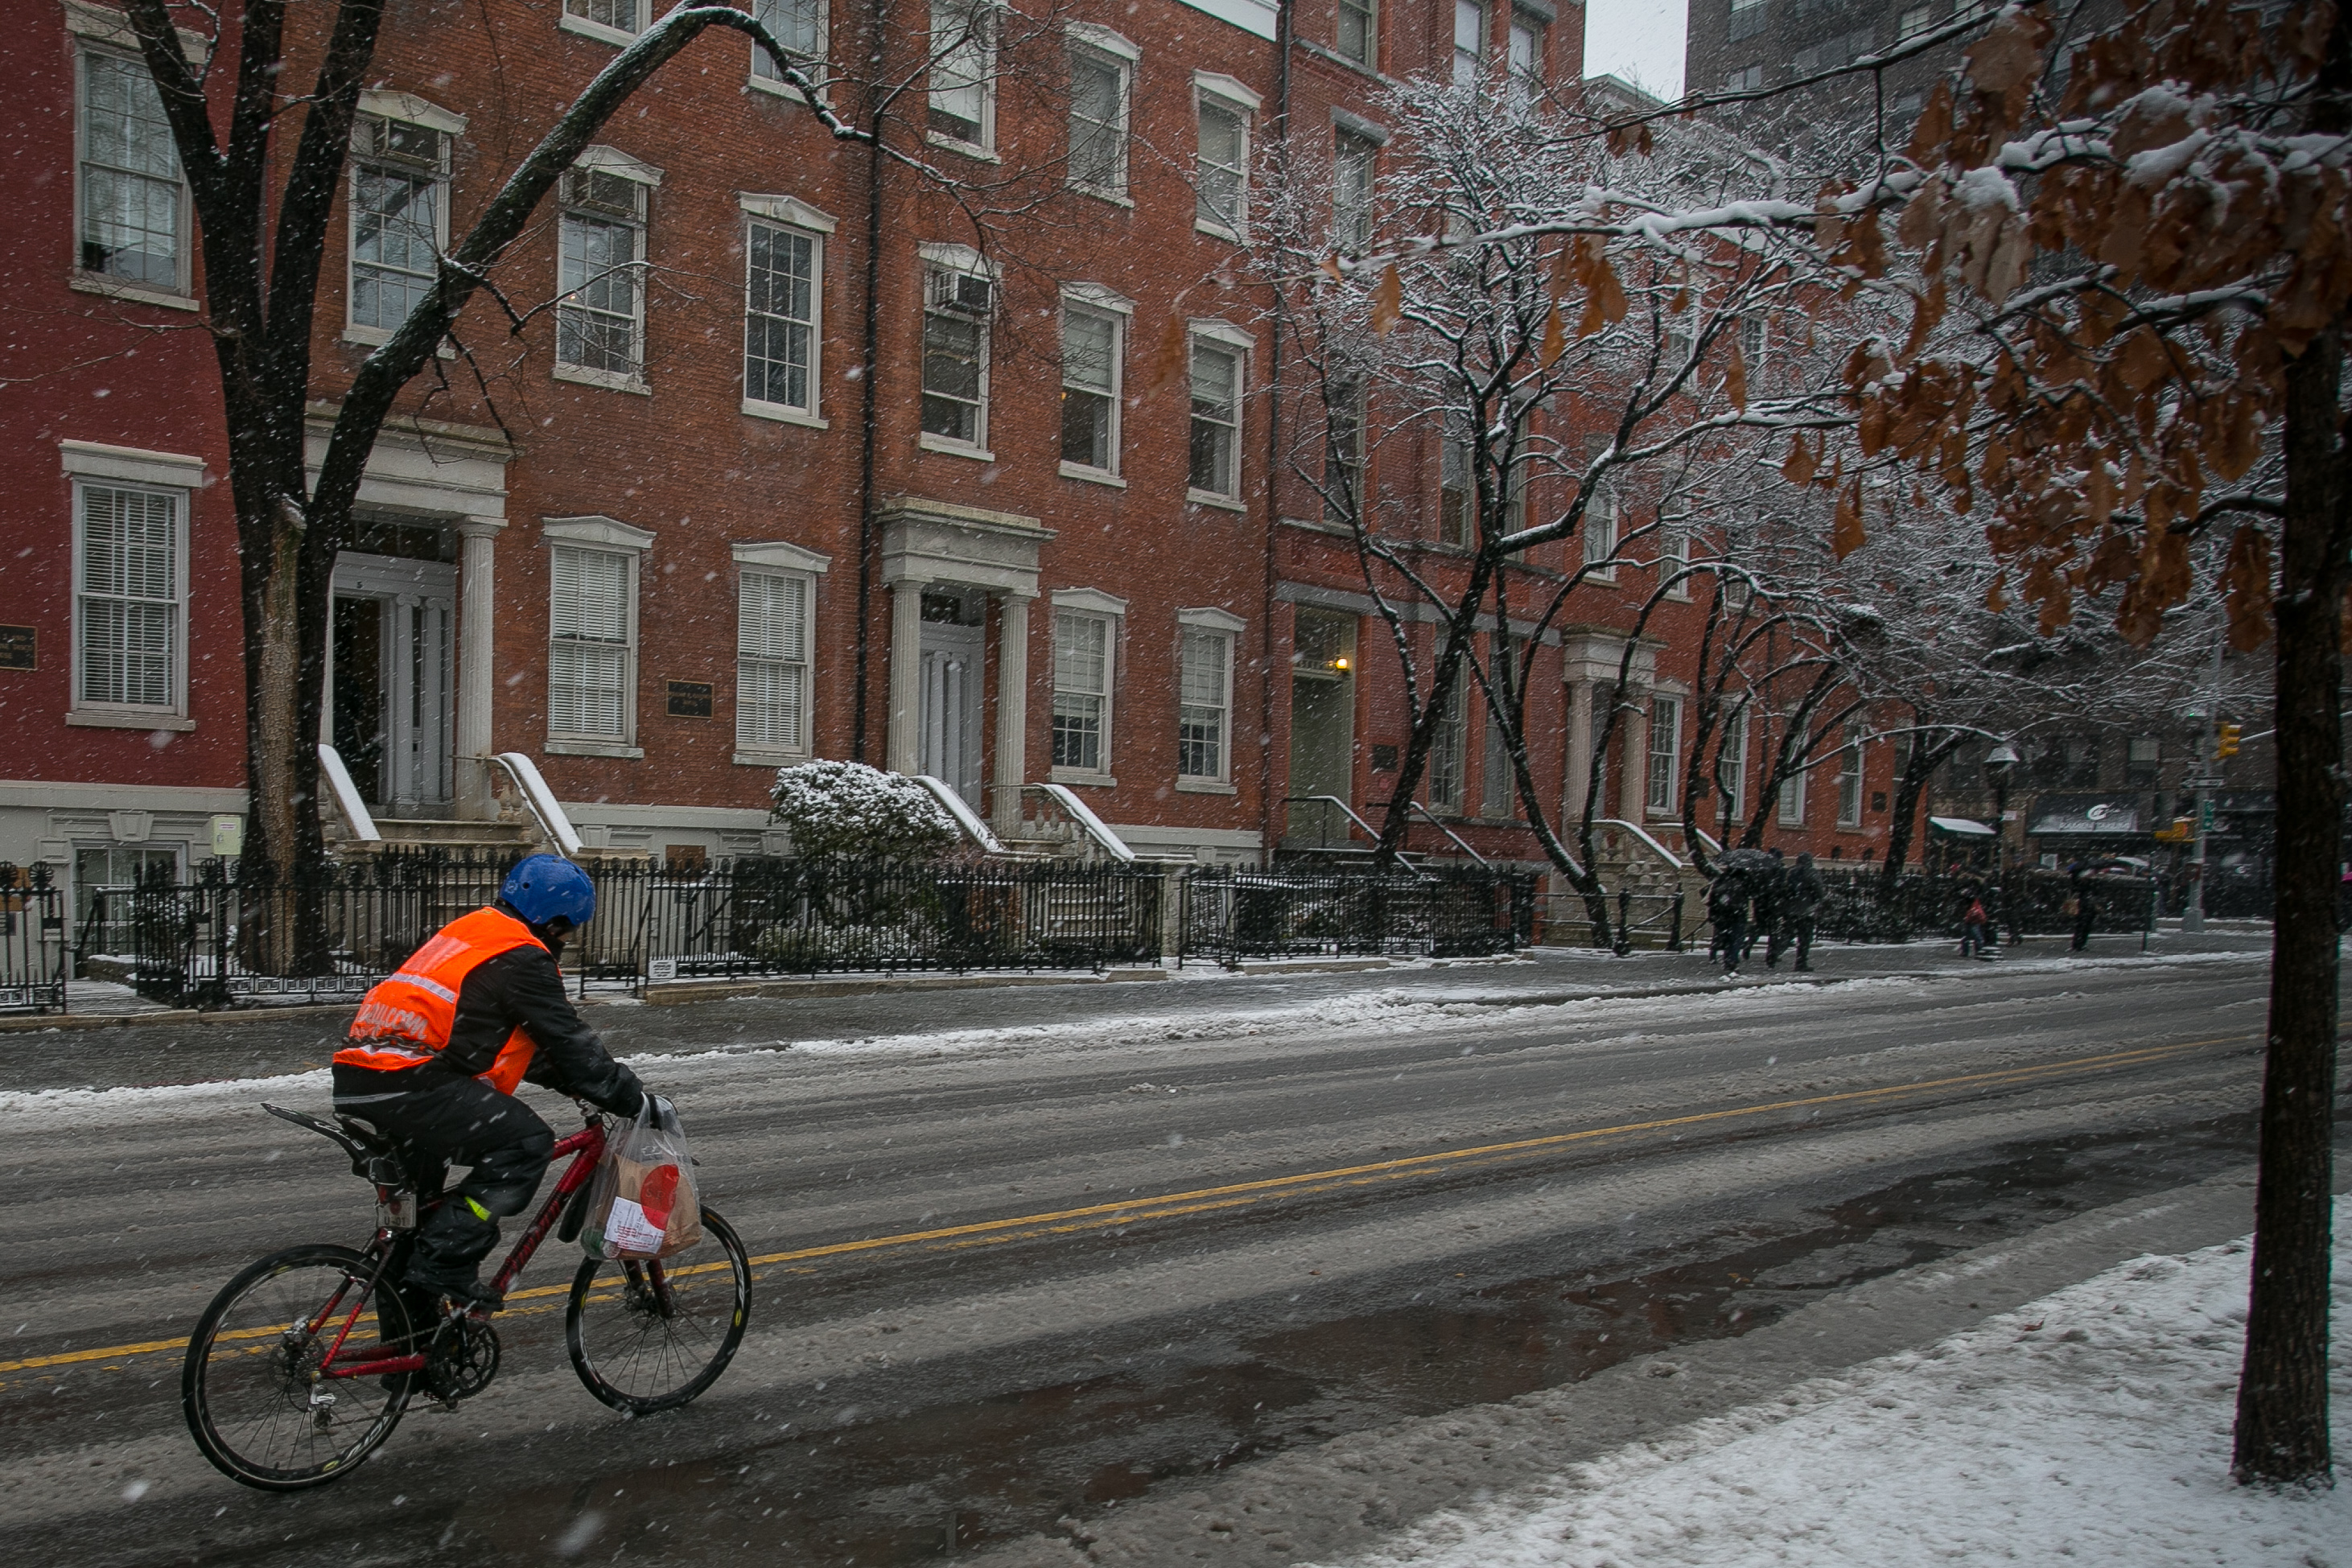 A deliveryman rides through a snow storm during the lunch rush in Greenwich Village.